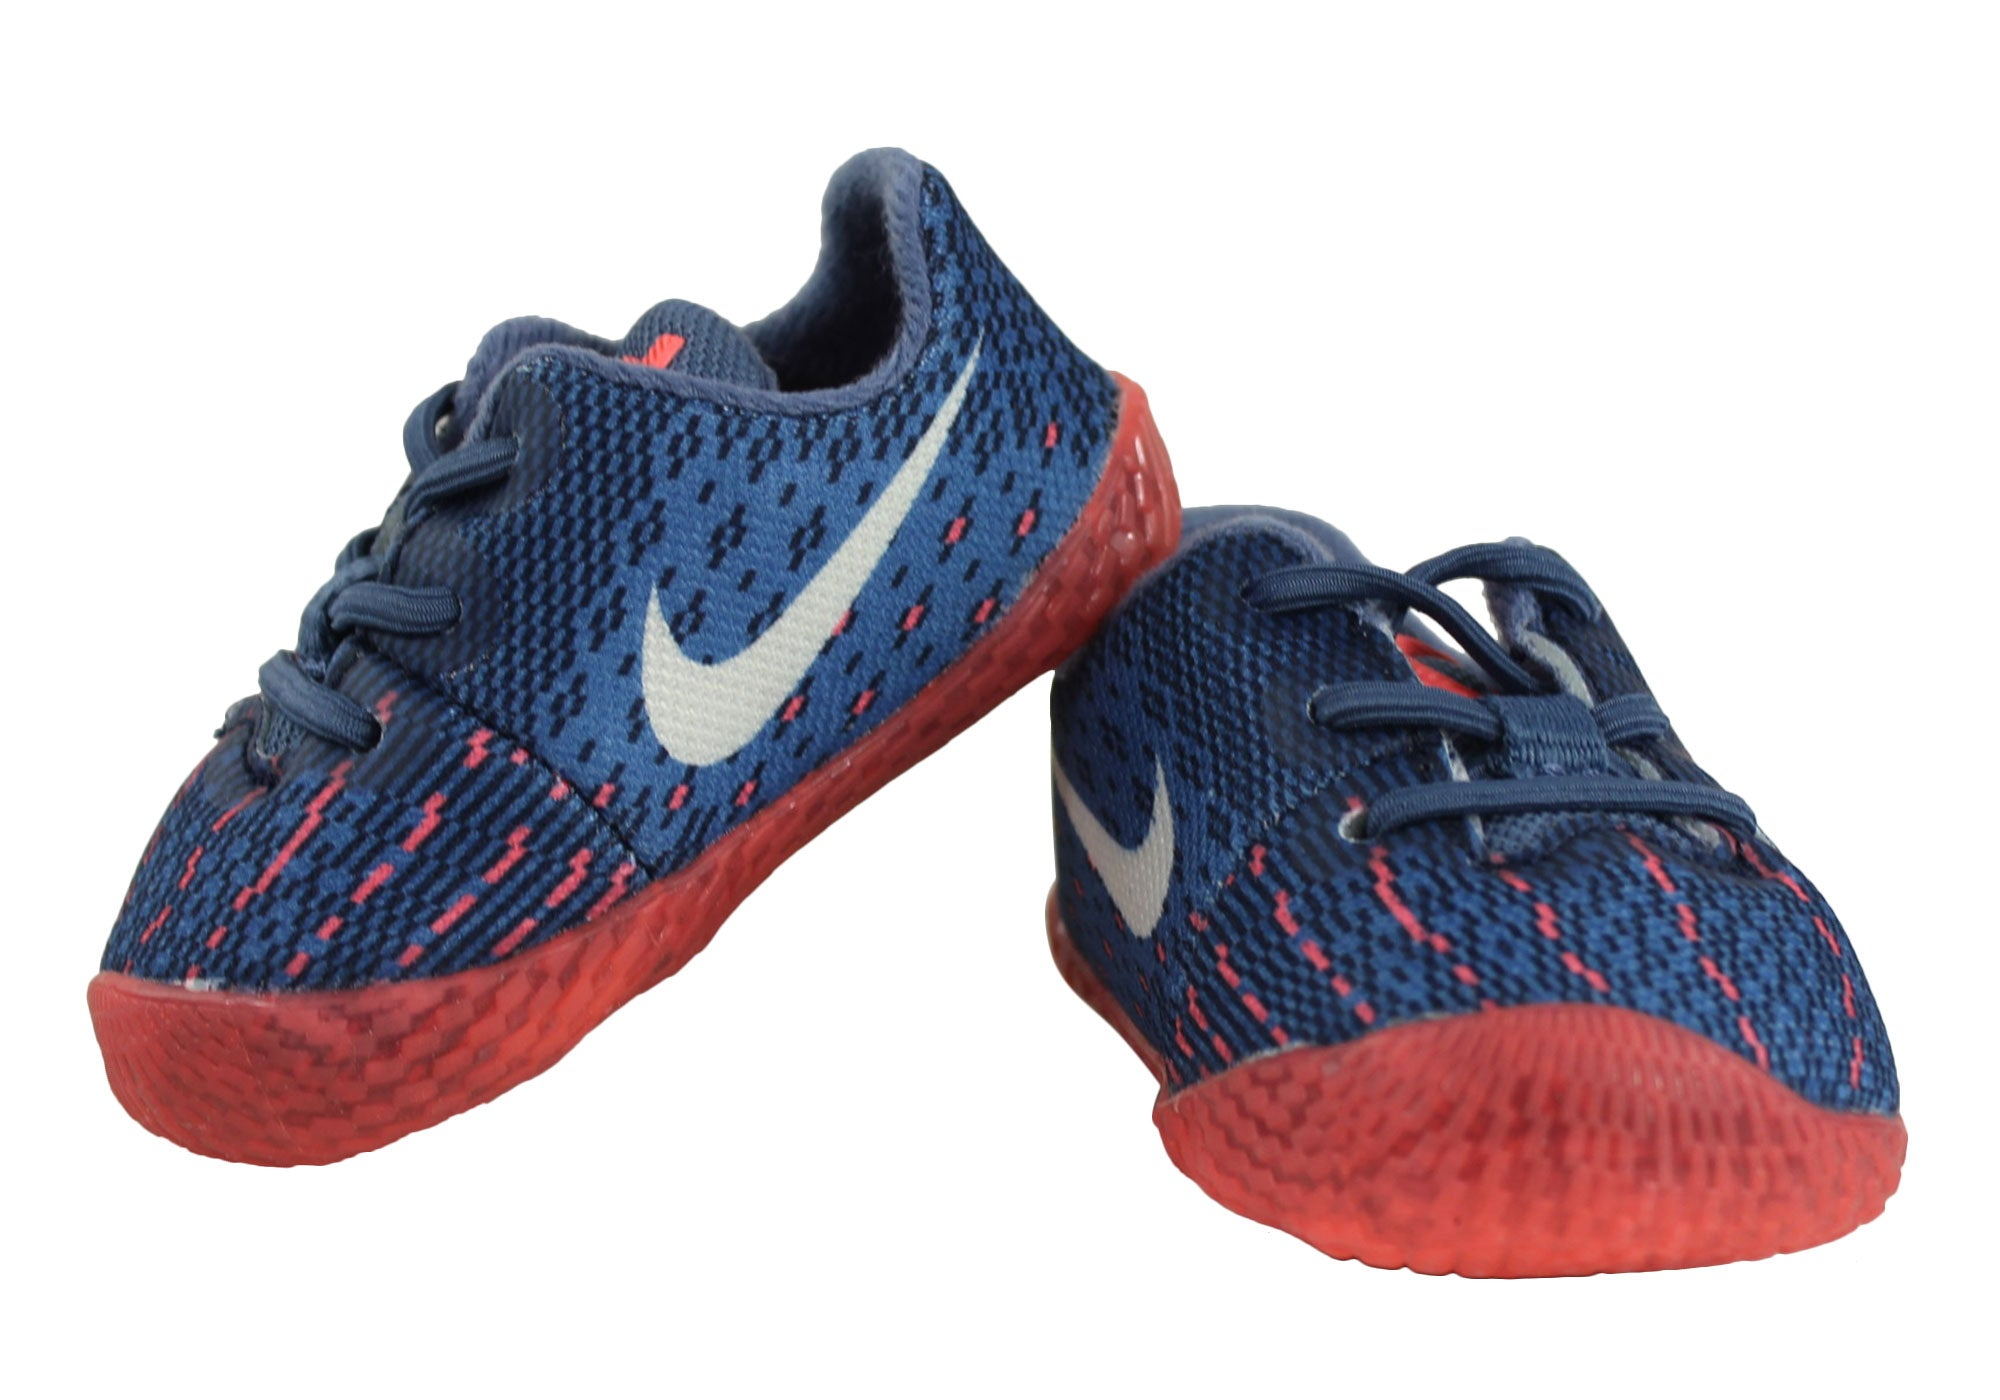 Nike KD 8 CBV Soft Sole Toddler Baby Shoes